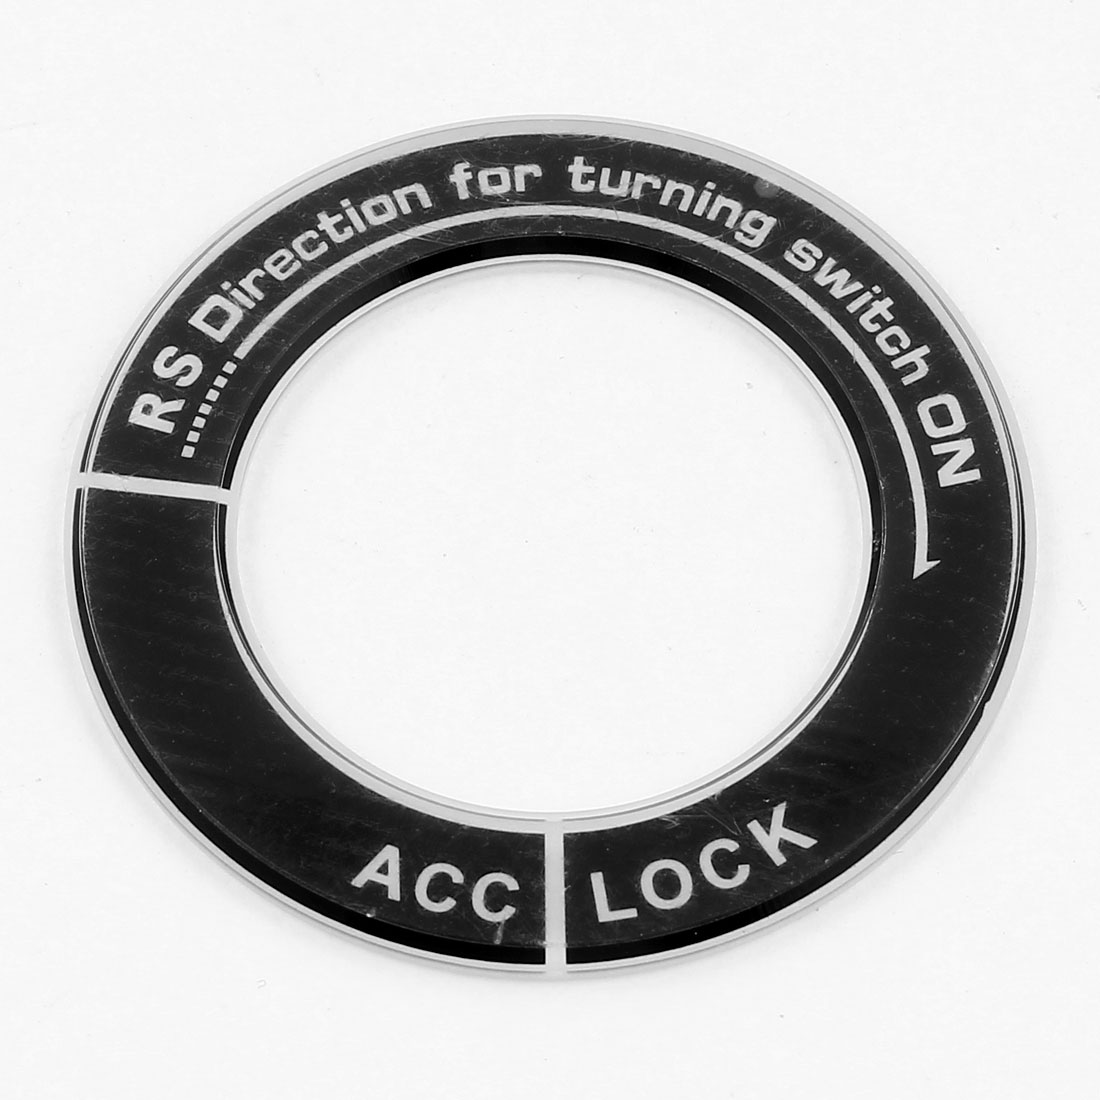 Glow in Dark Sticker Luminous Key Circle Cover Ring Black for Nissan Acrylic